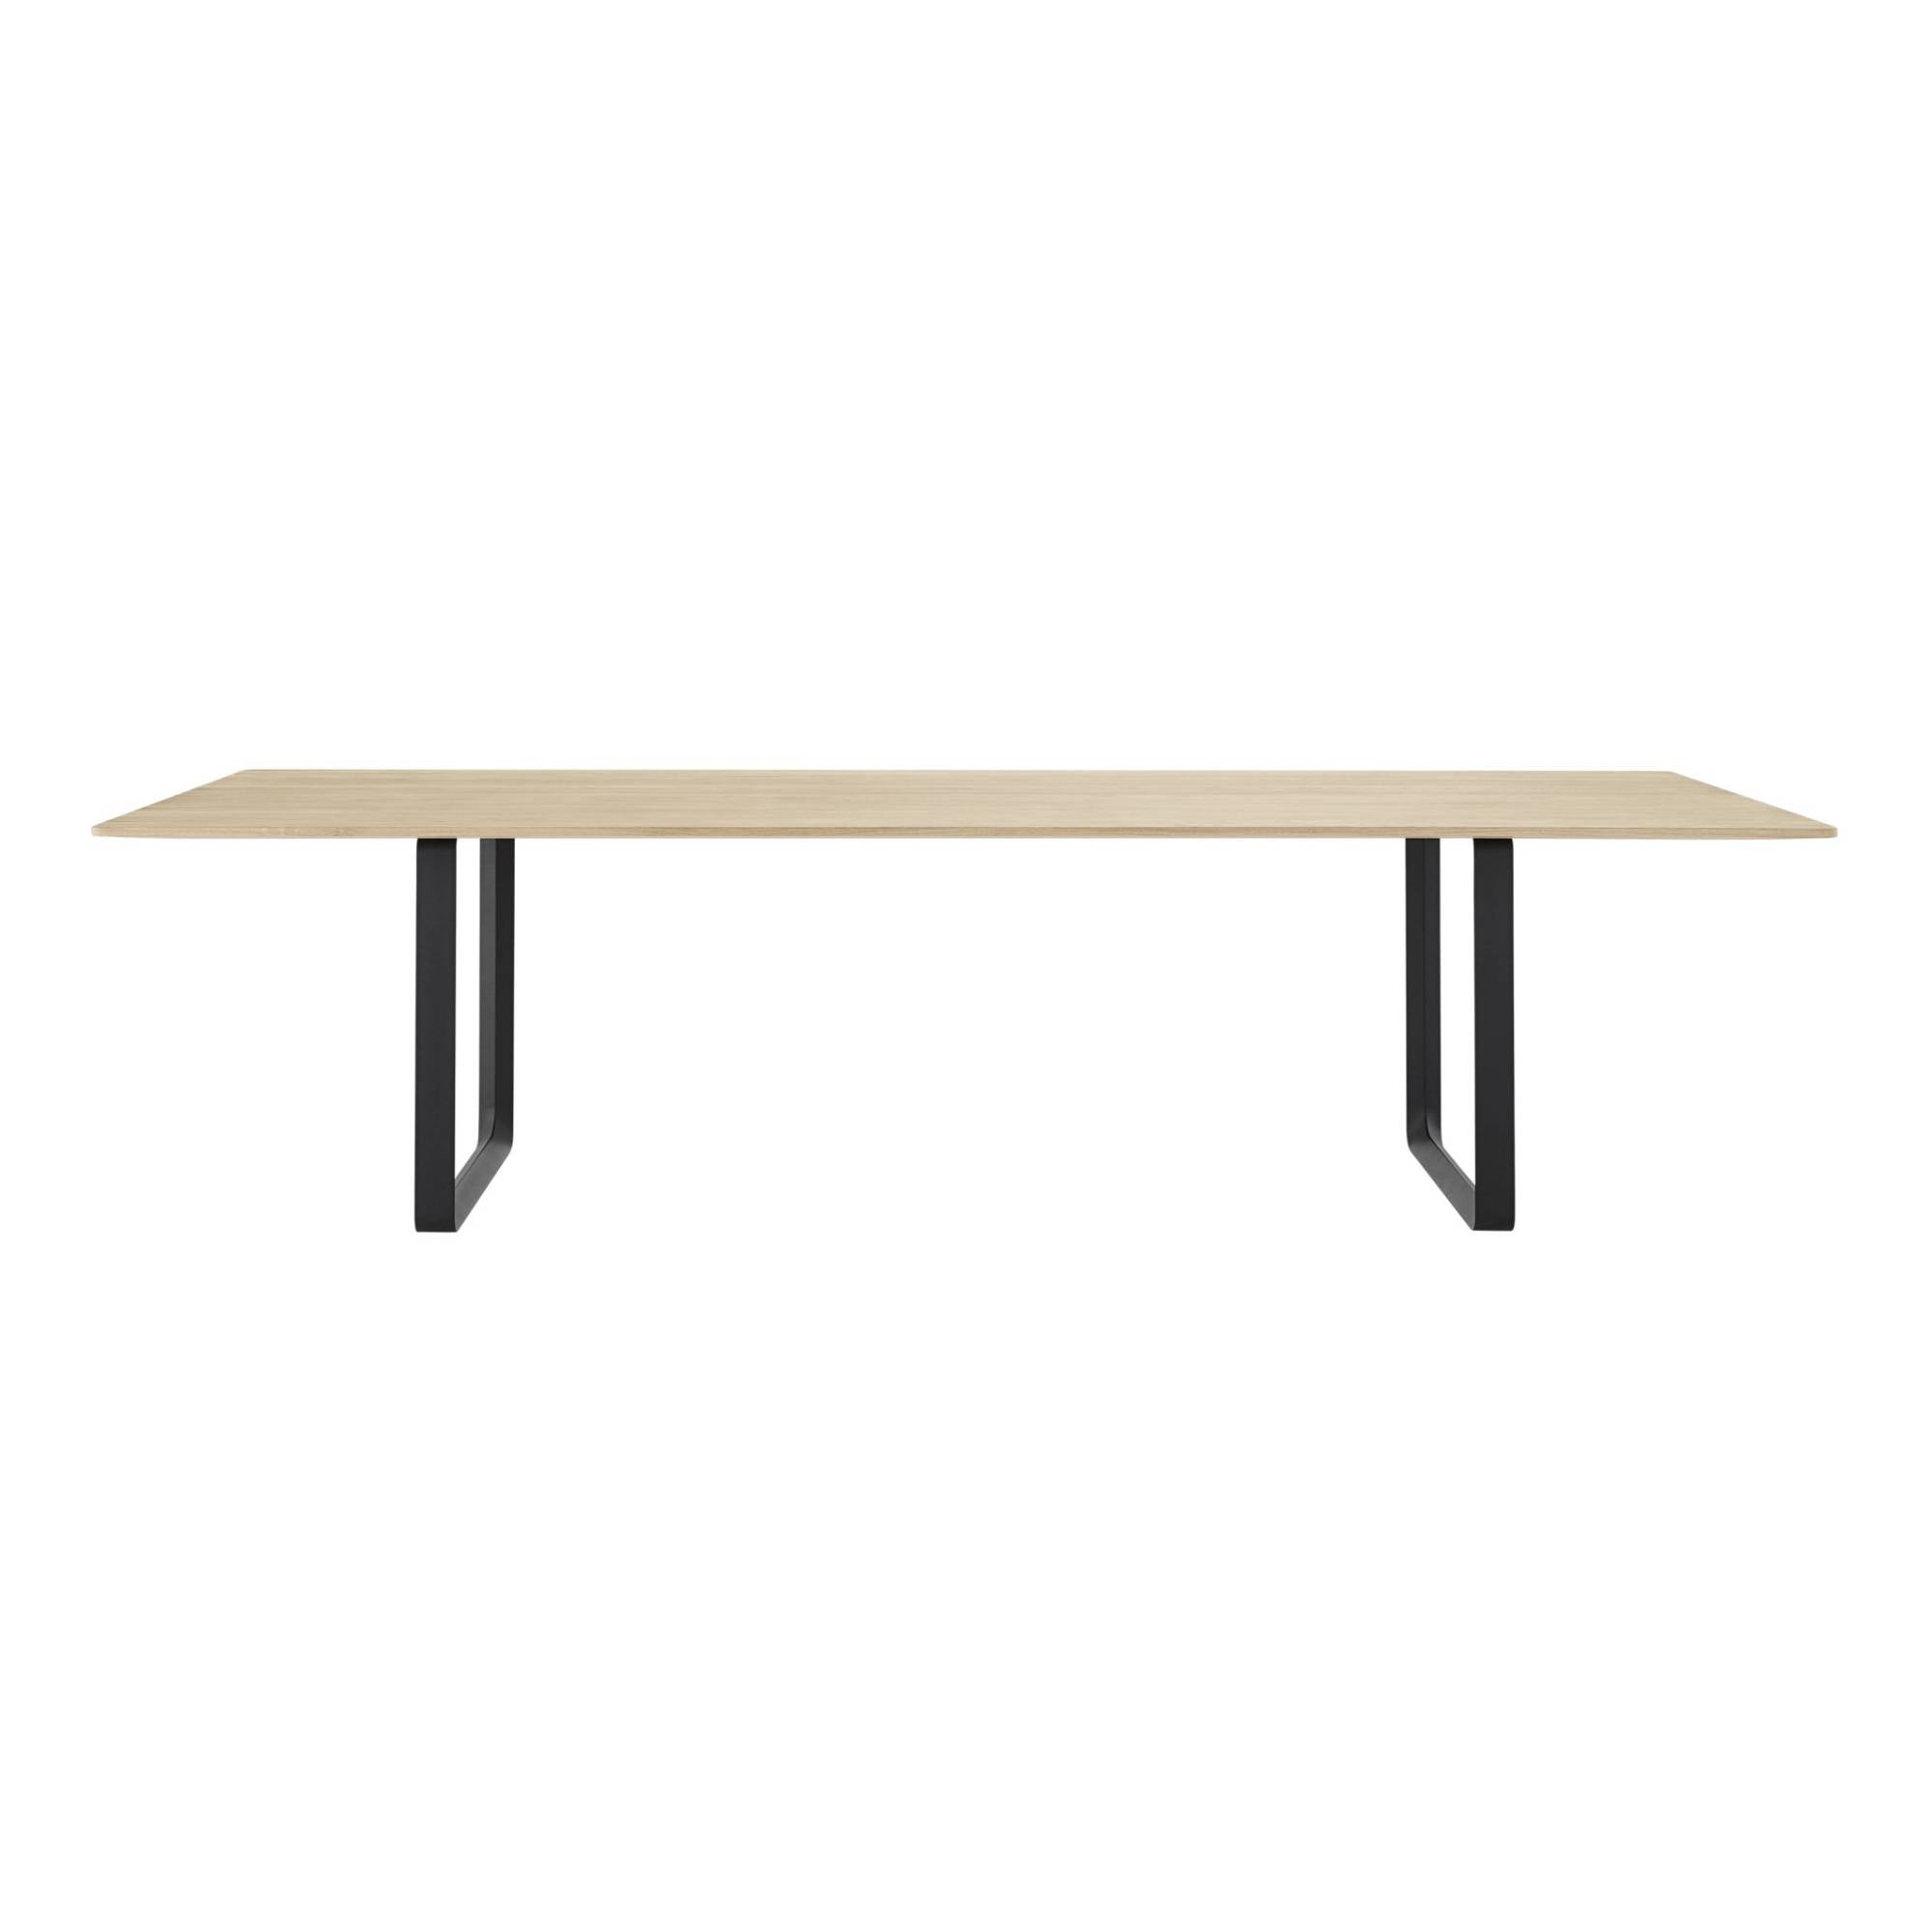 70/70 Table: Solid Oak + XX Large + Black